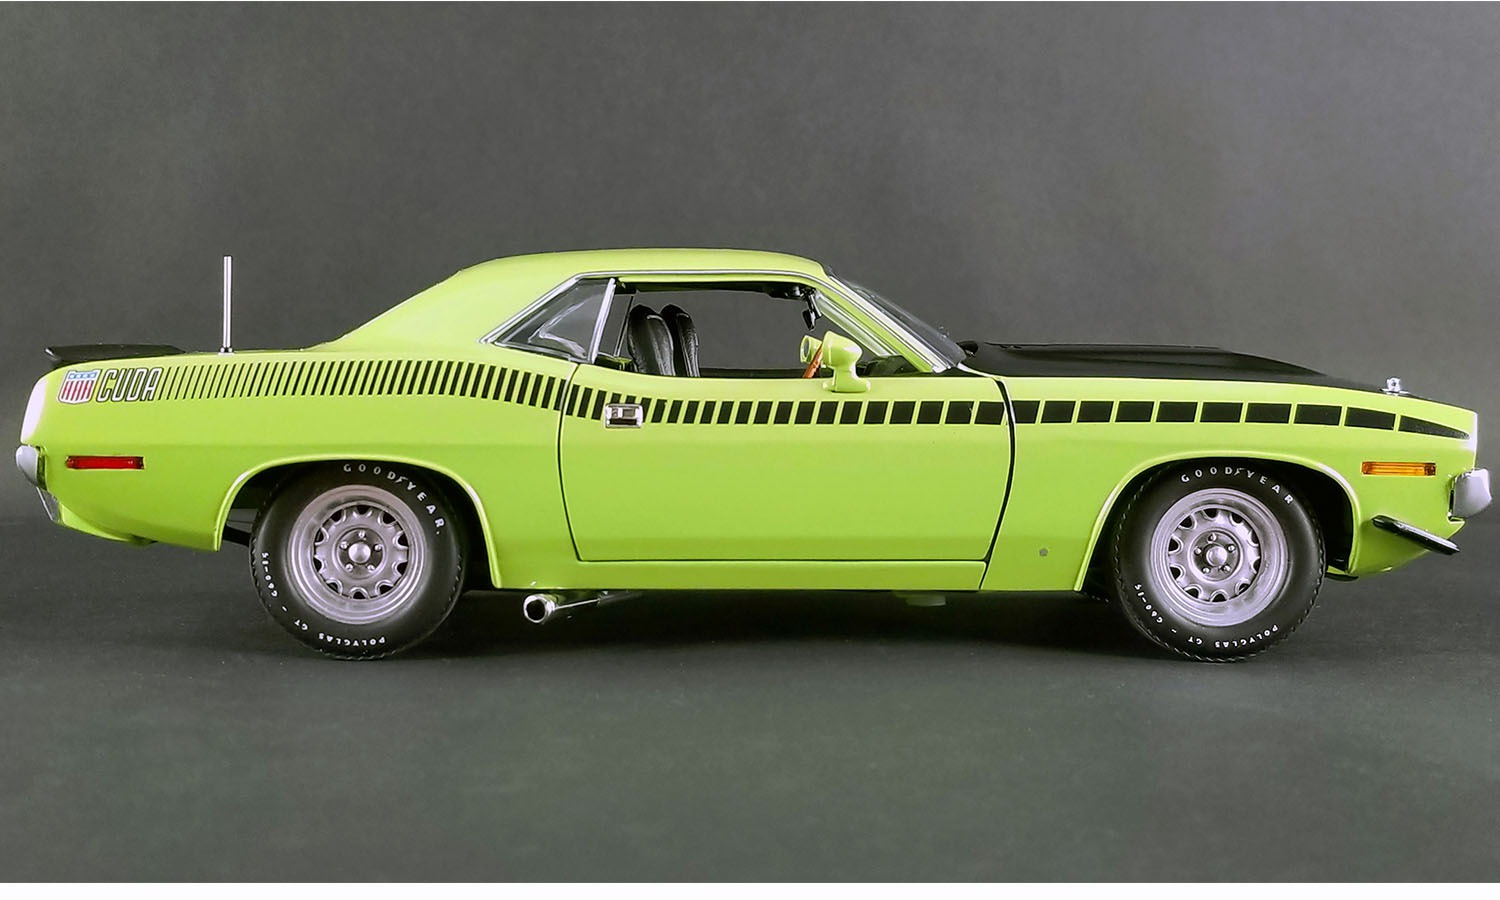 ACME 1/18 minicar die-casting model 1970 モデルプリムス AAR Cuda lime green 1970  Plymouth AAR (All American Racing) Cuda 1/18 Lime Green by